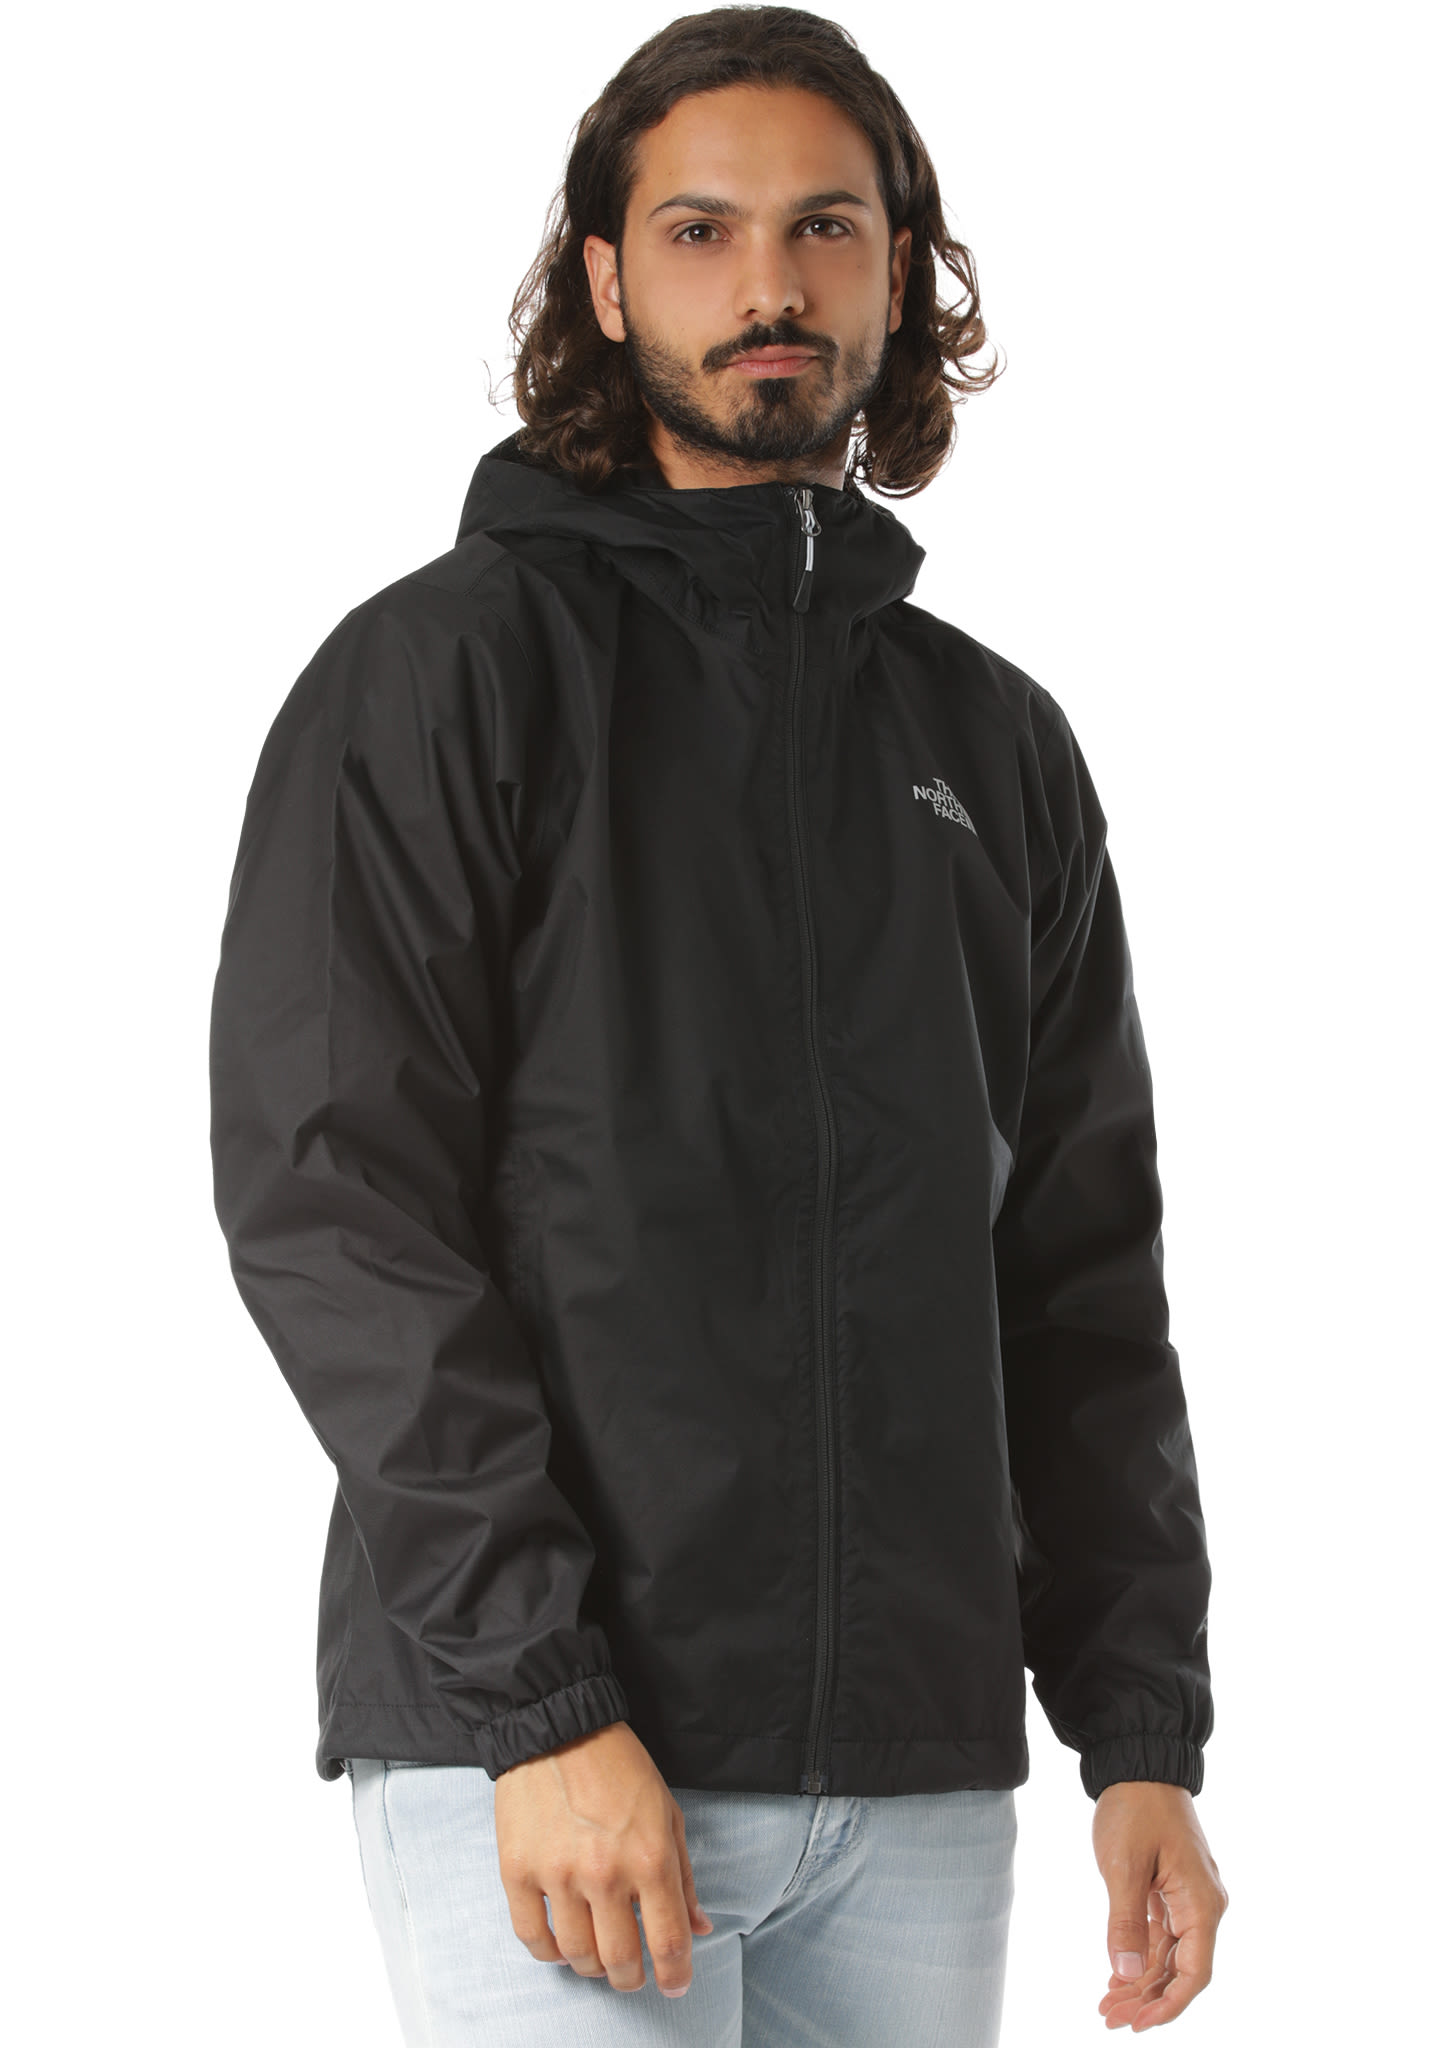 THE NORTH FACE Quest - Outdoor Jacket for Men - Black - Planet Sports dbcfeeb8434